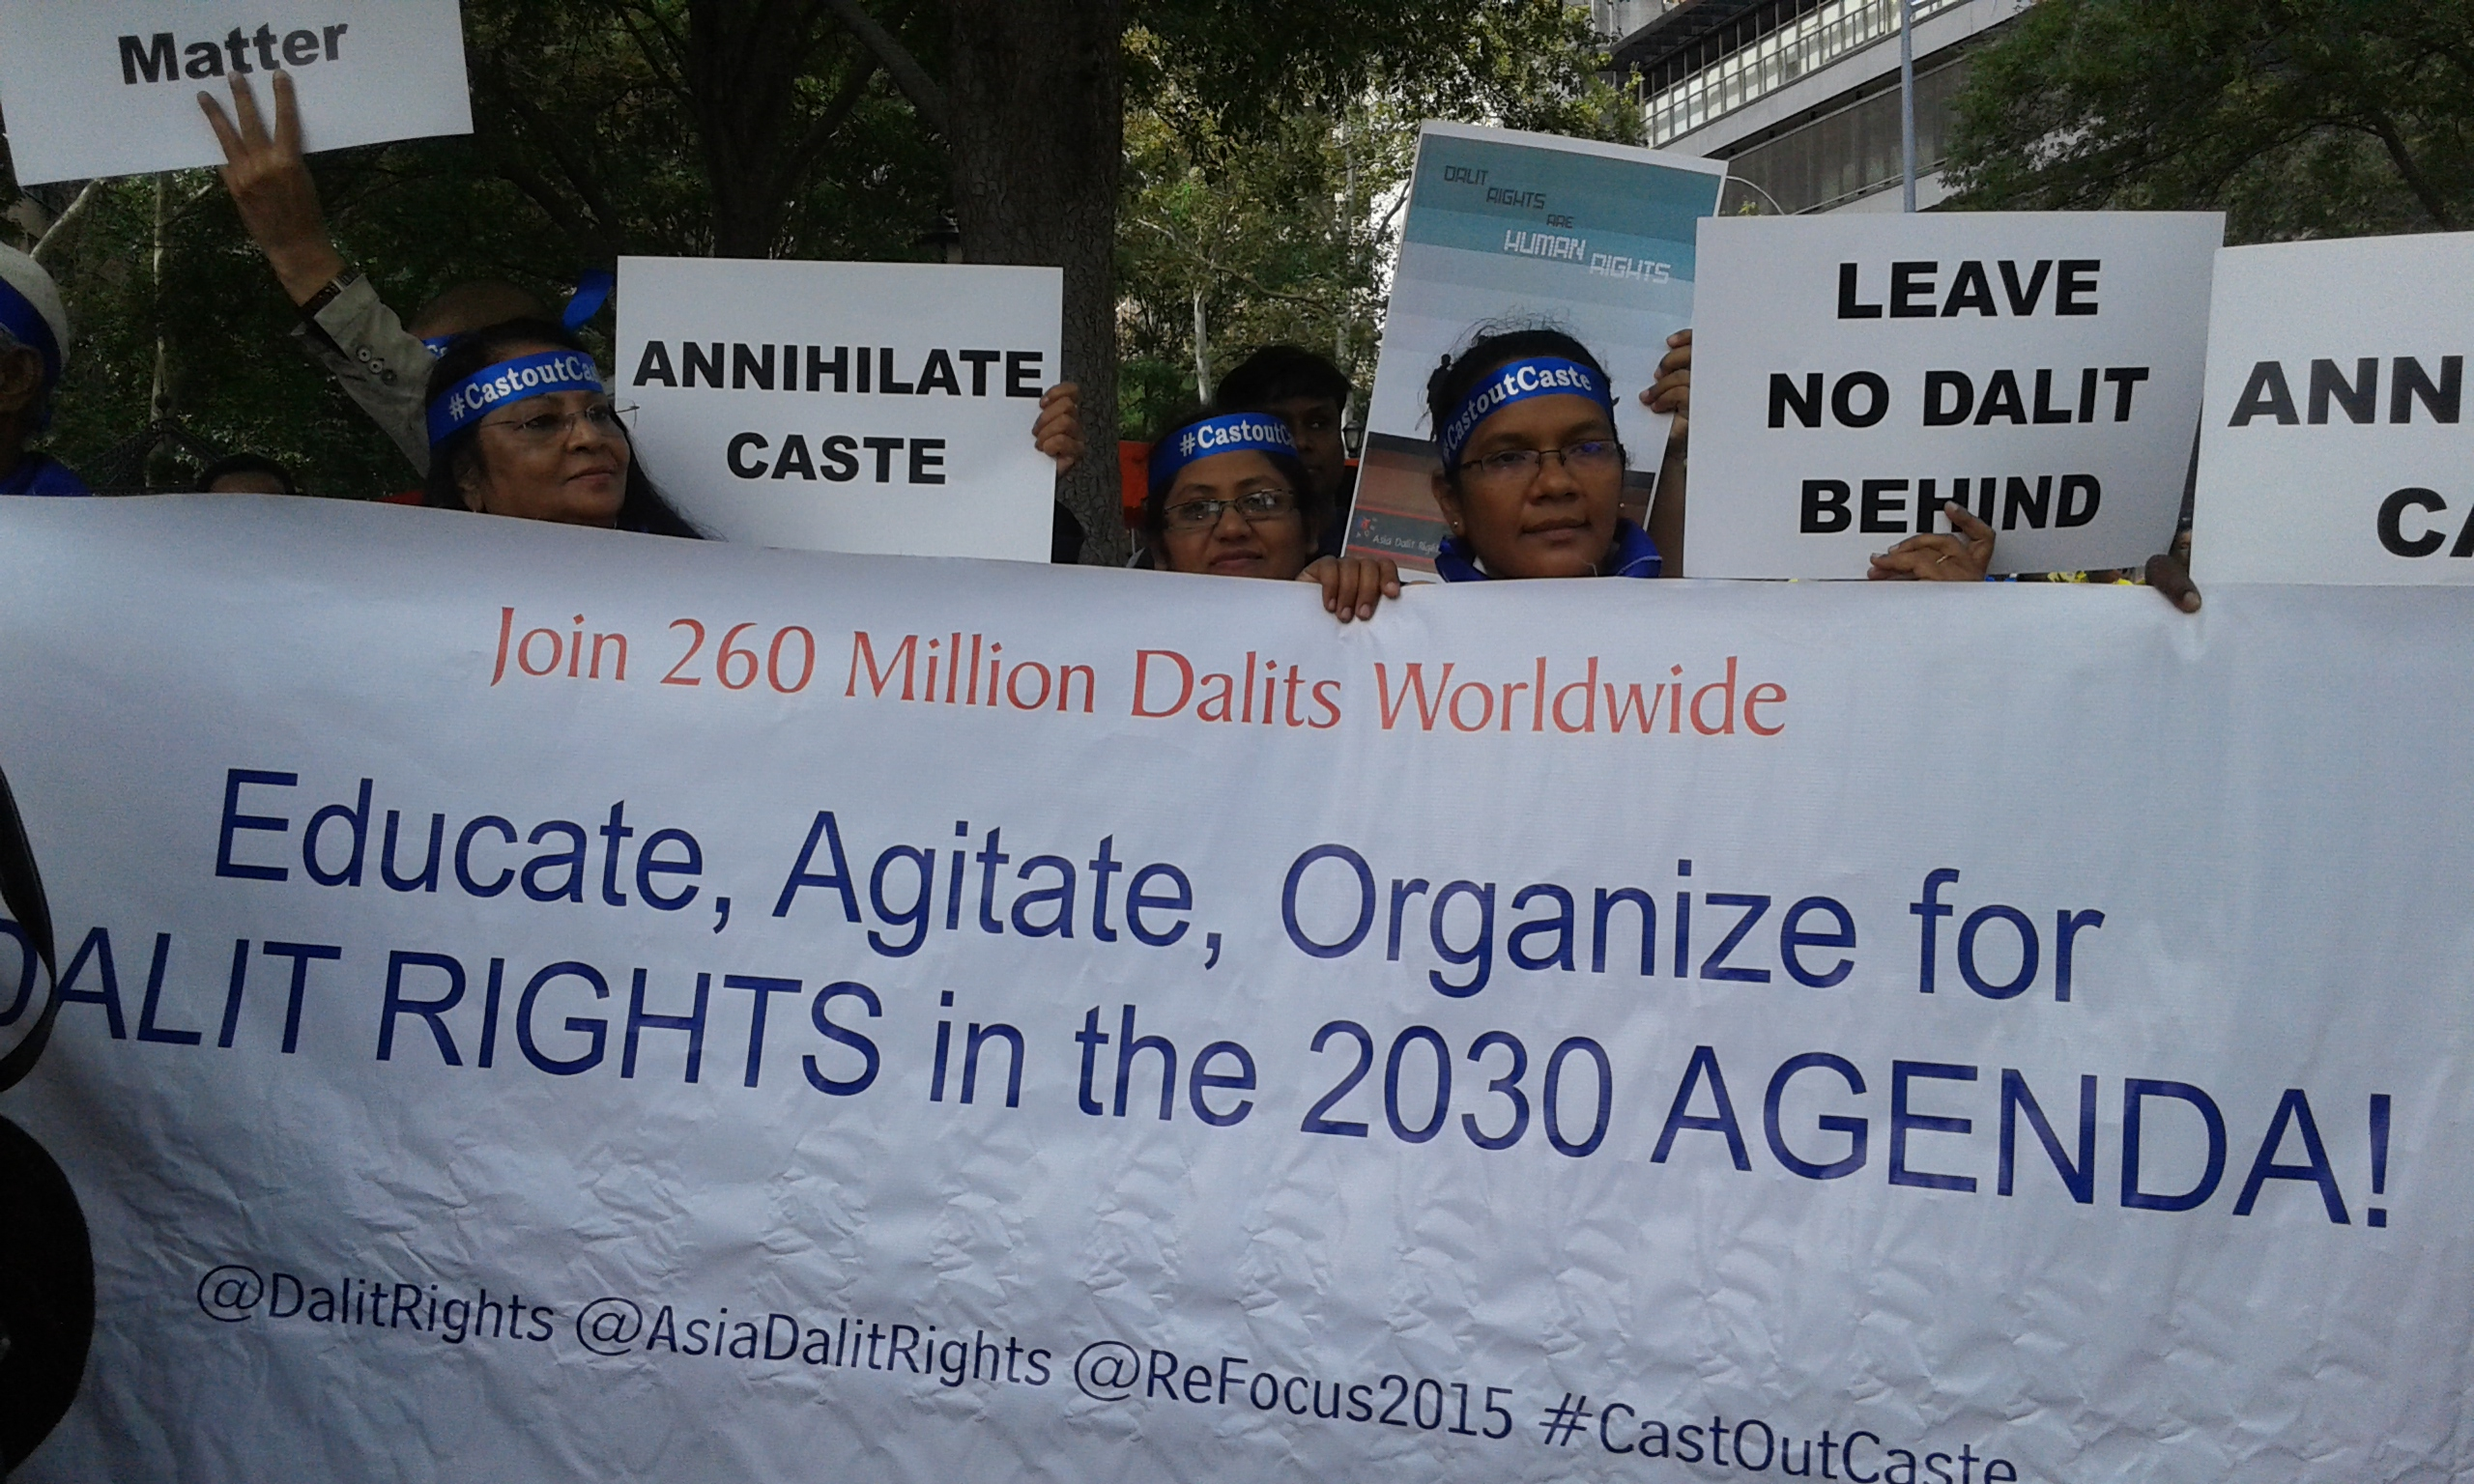 A view of the protest organised by Dalit groups outside the UN in New York. Credit: Urvashi Sarkar